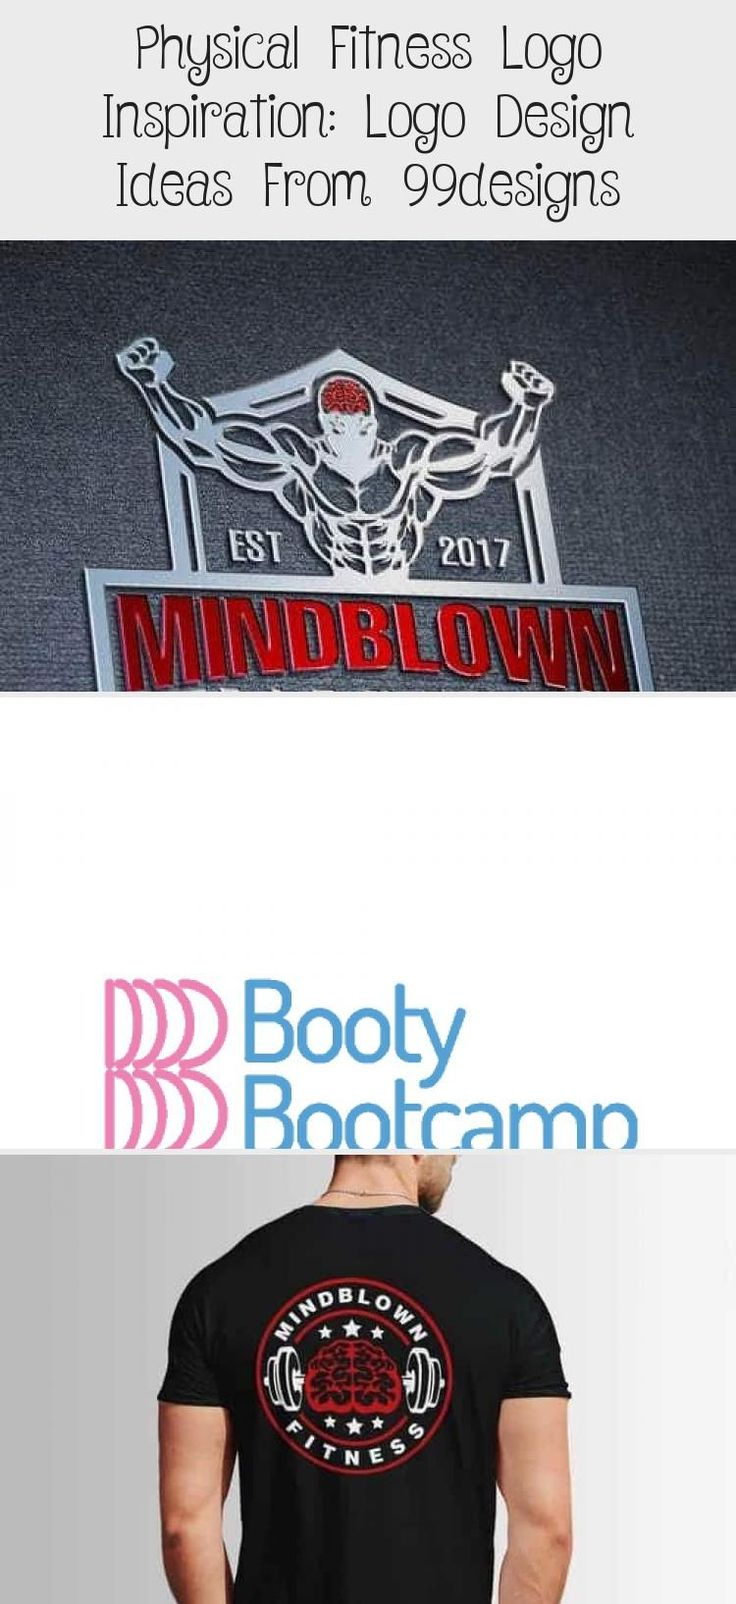 Physical Fitness Logo Inspiration Logo Design Ideas from